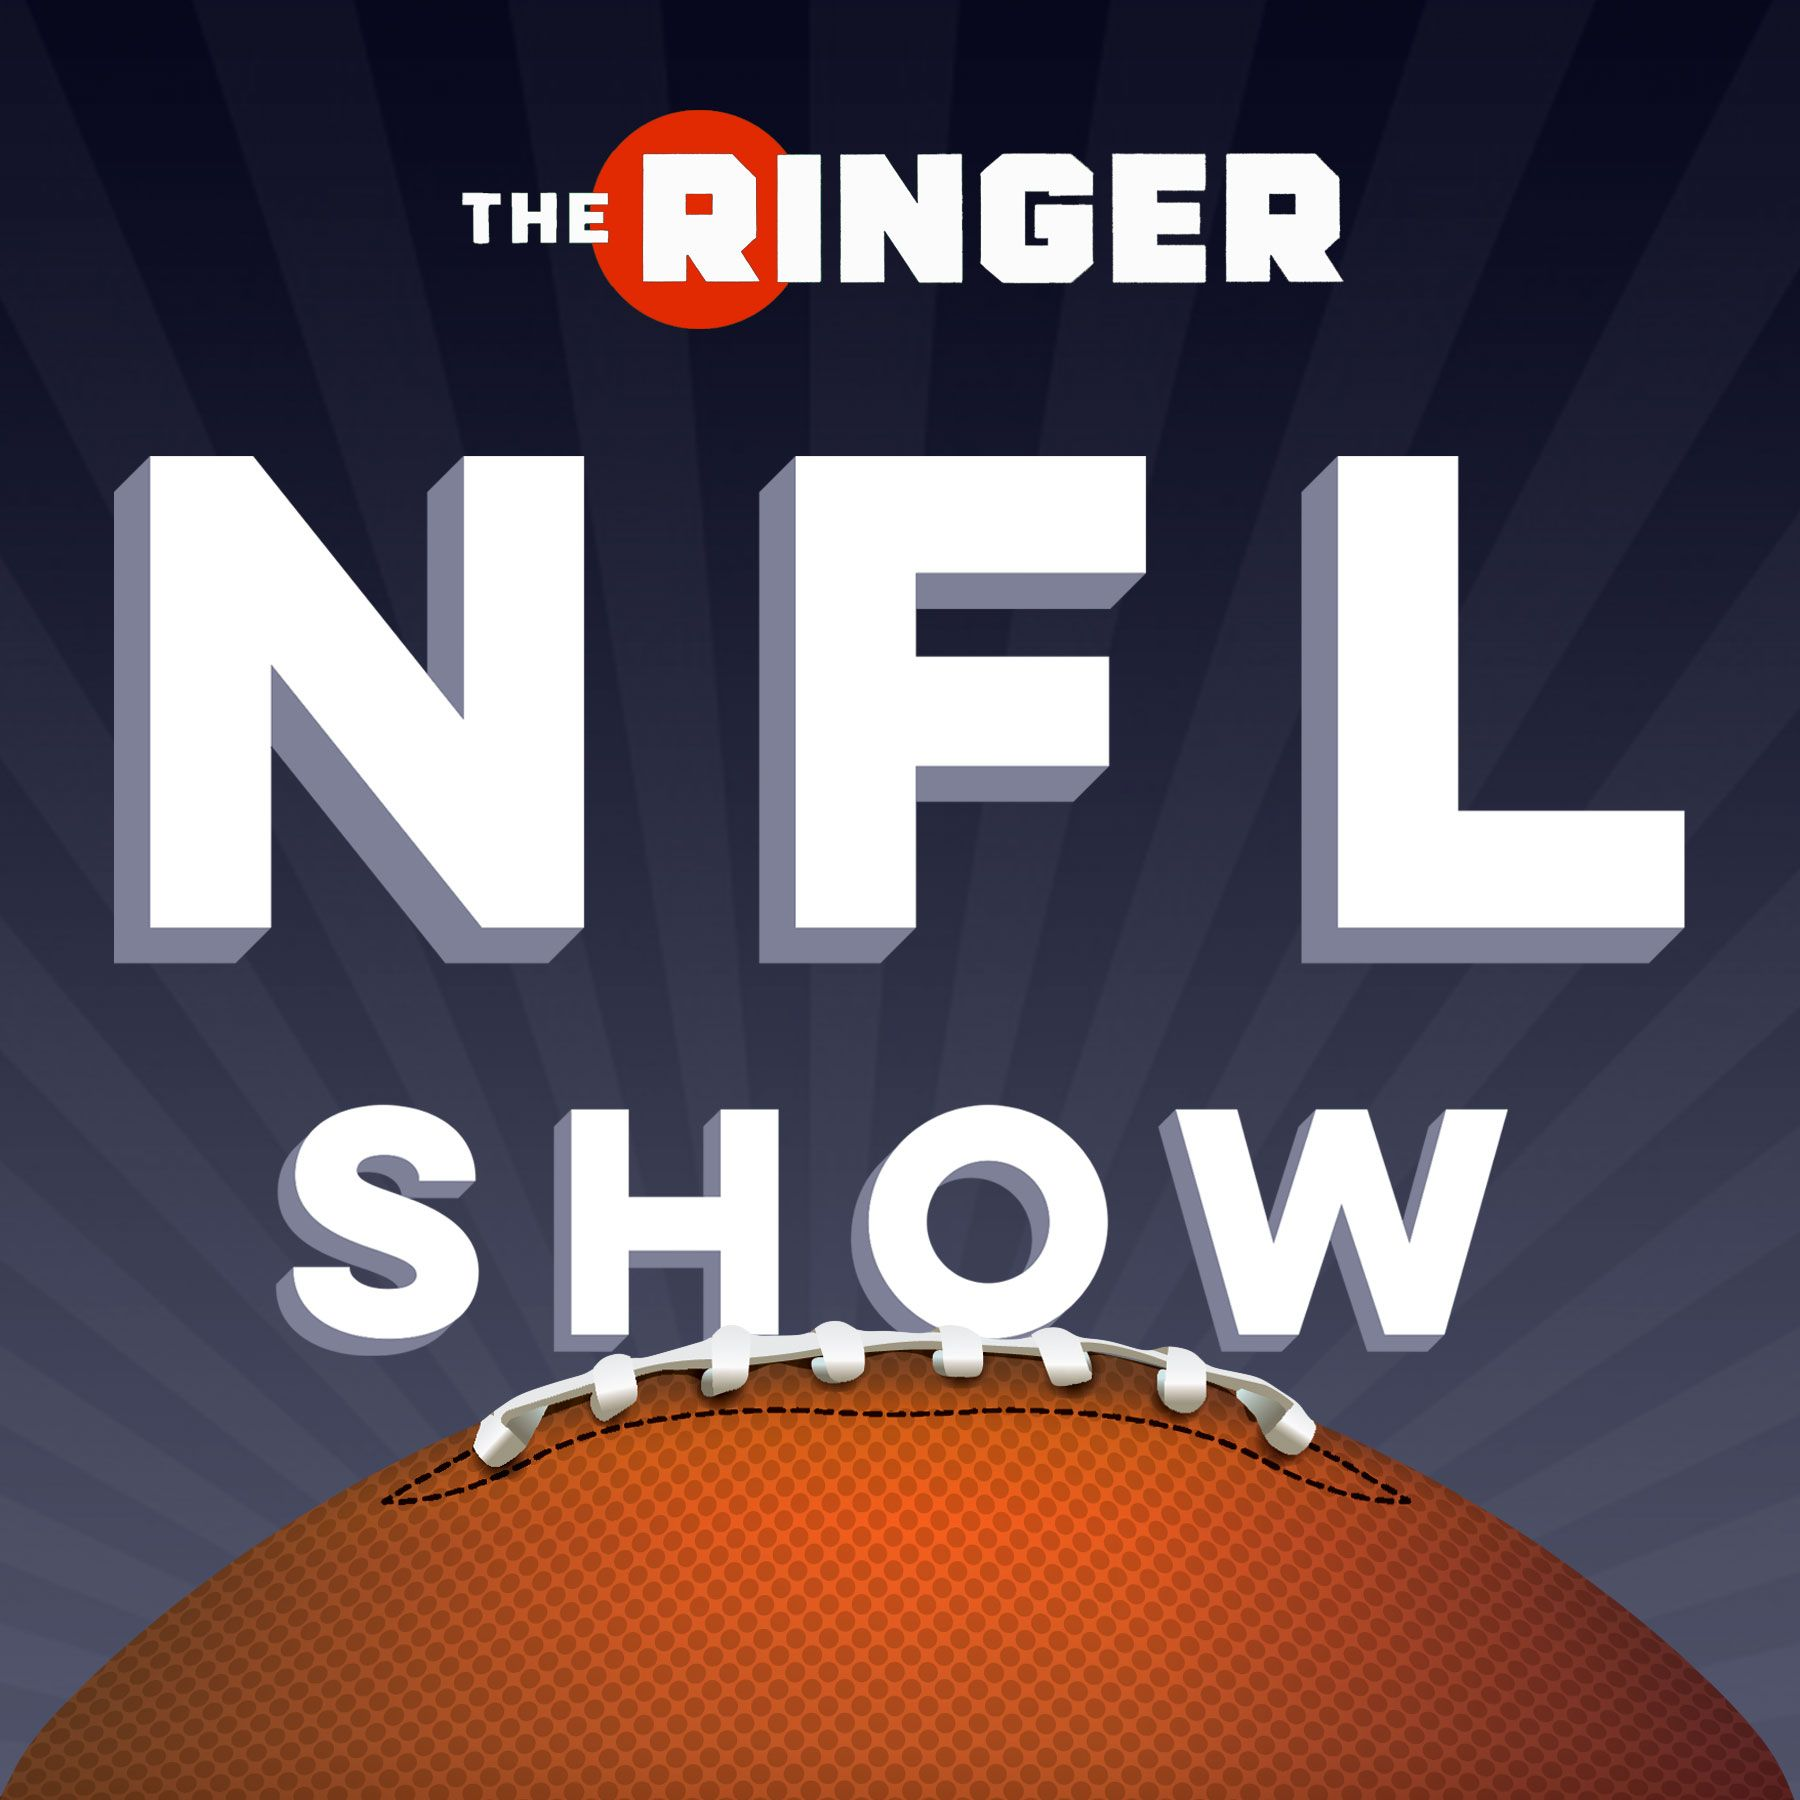 Another Pats-Seahawks Classic, Week 2 Injuries, and Bad Coaching | The Ringer NFL Show